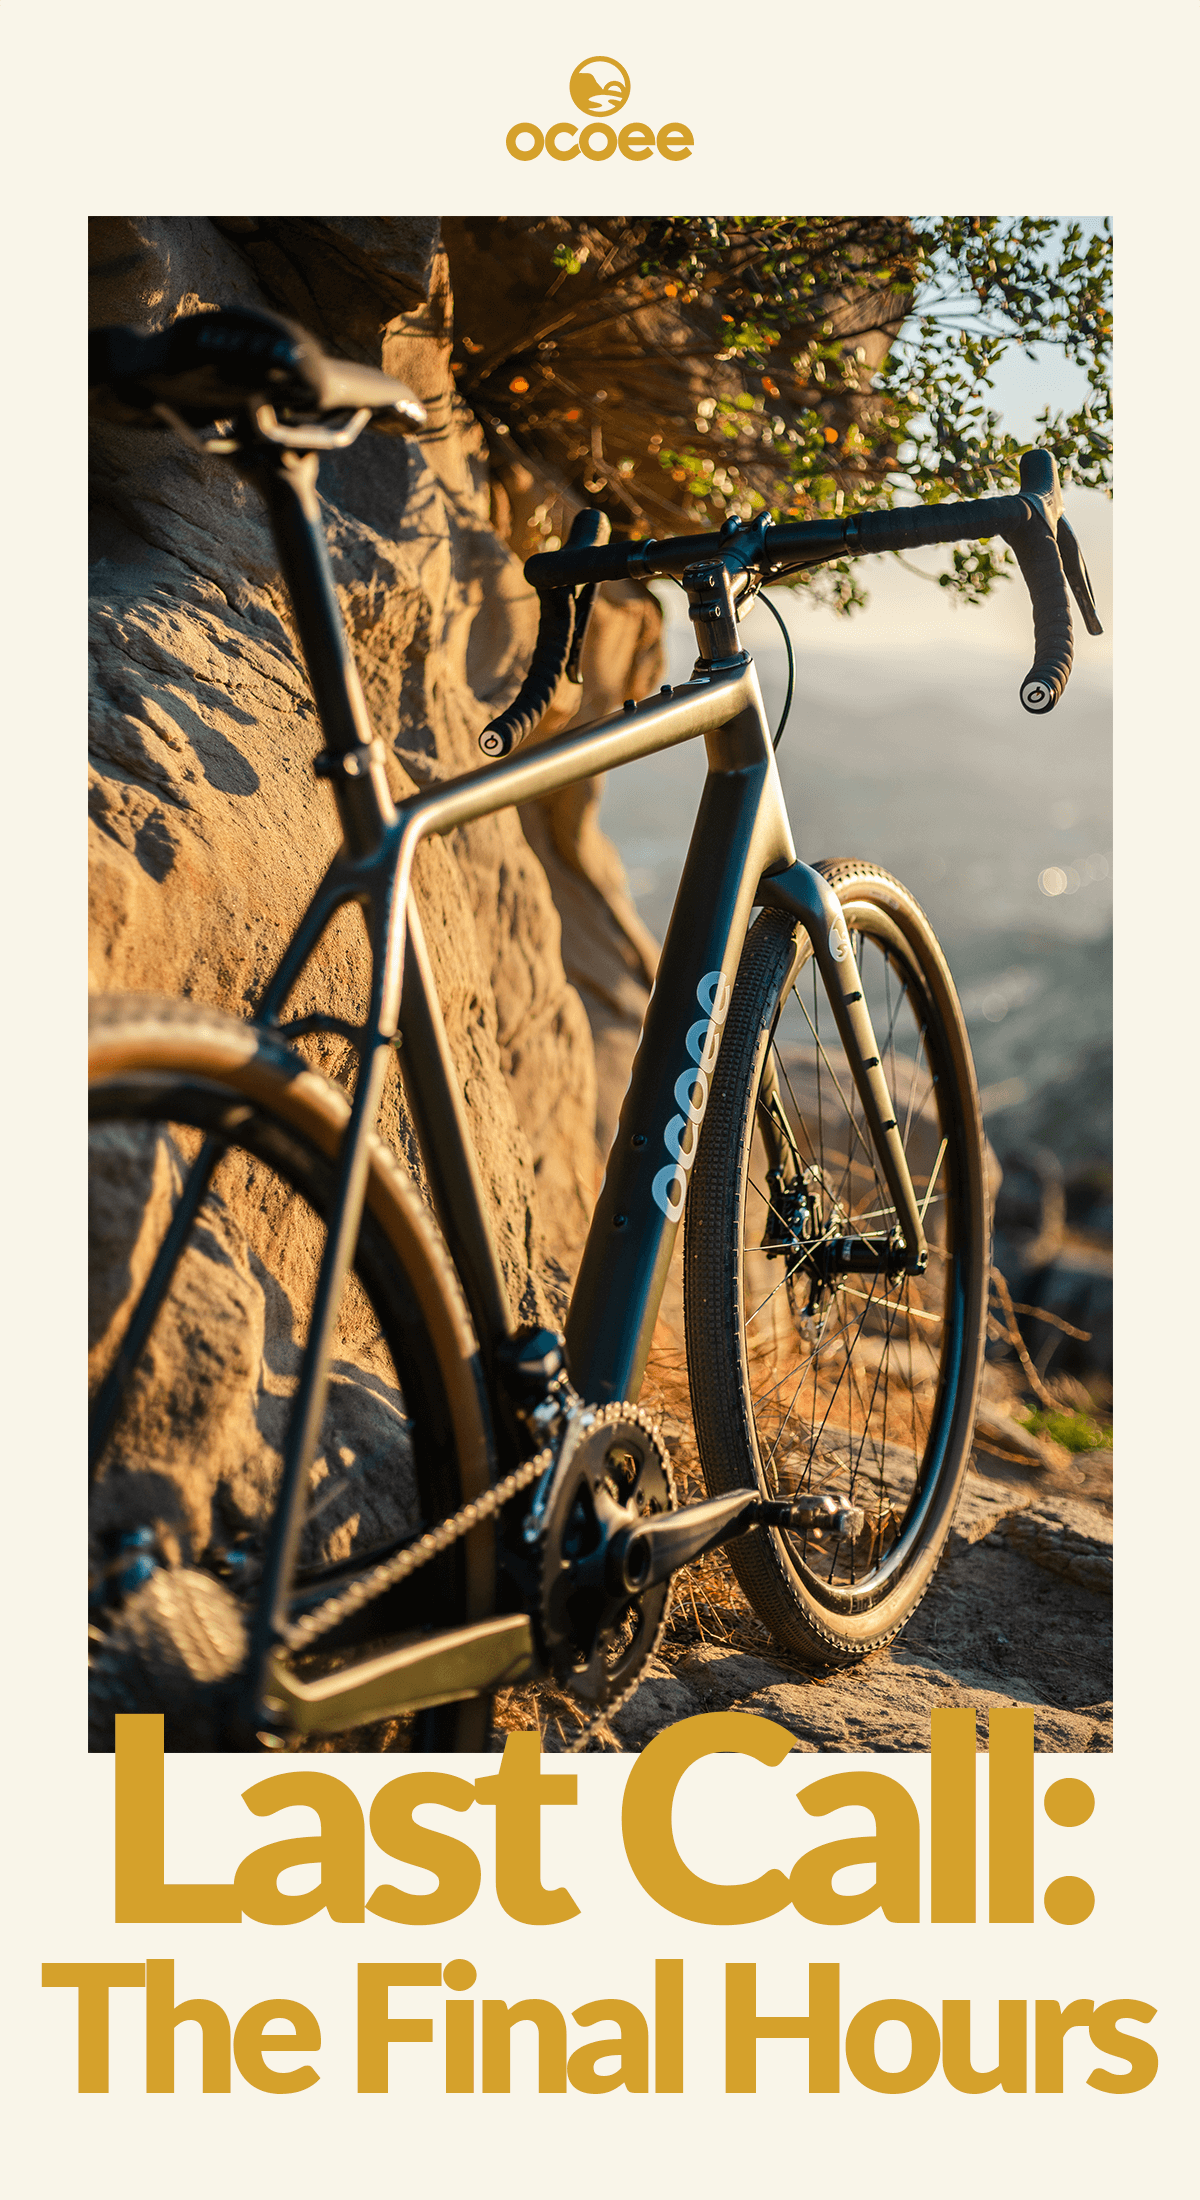 It's the final countdown: the Ocoee Black Friday + Cyber Monday savings are coming to an end! Save up to $410 on a new Ocoee bike.